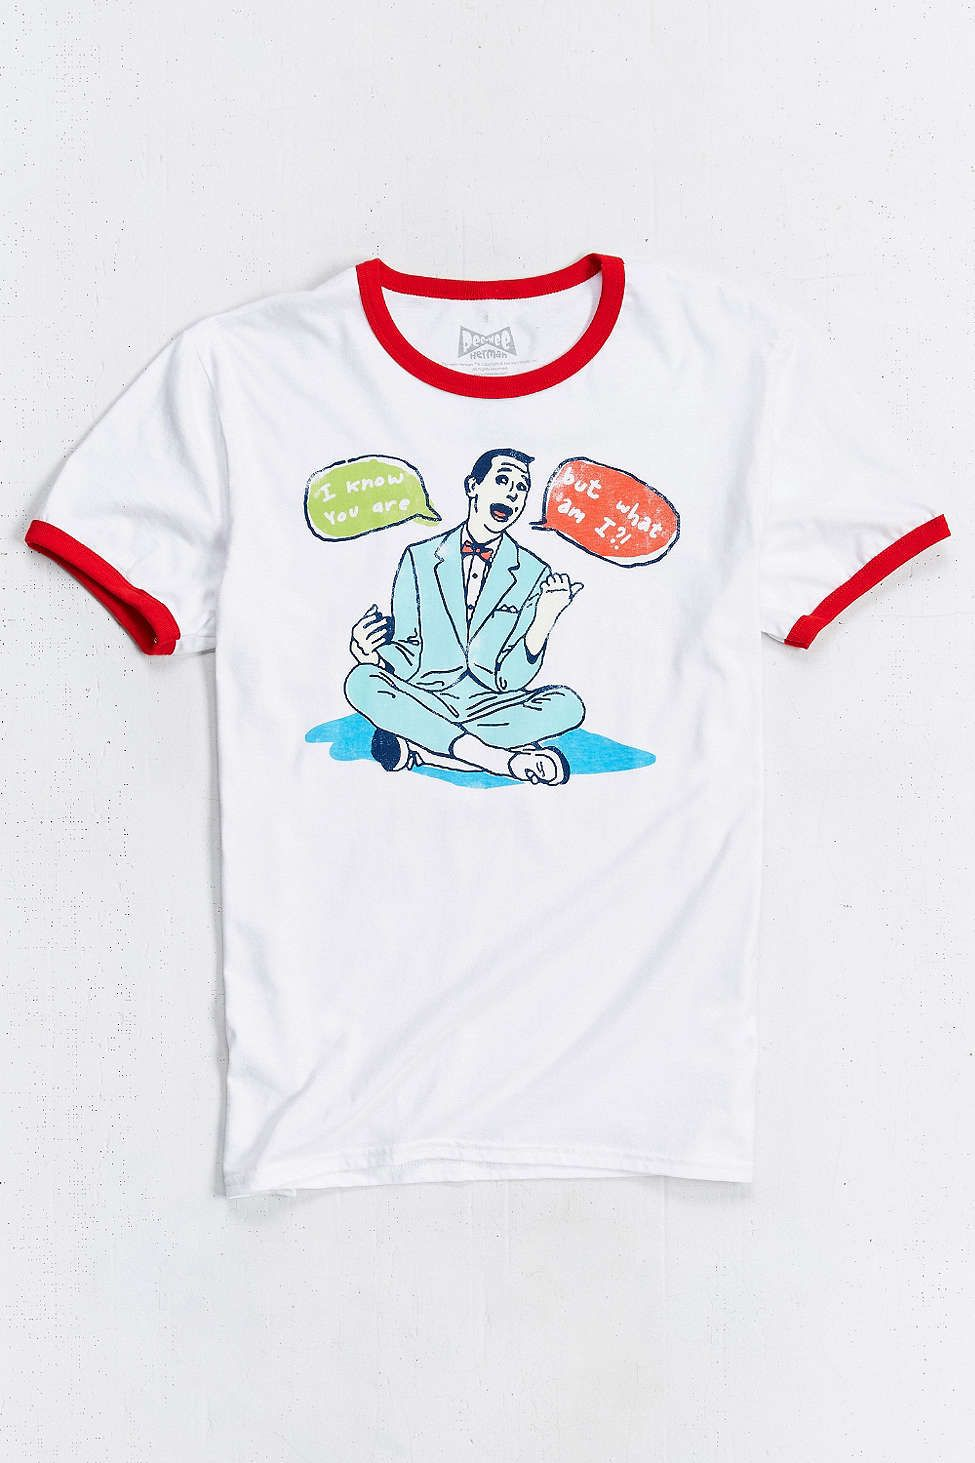 Pee-wee I Know You Are Ringer Tee